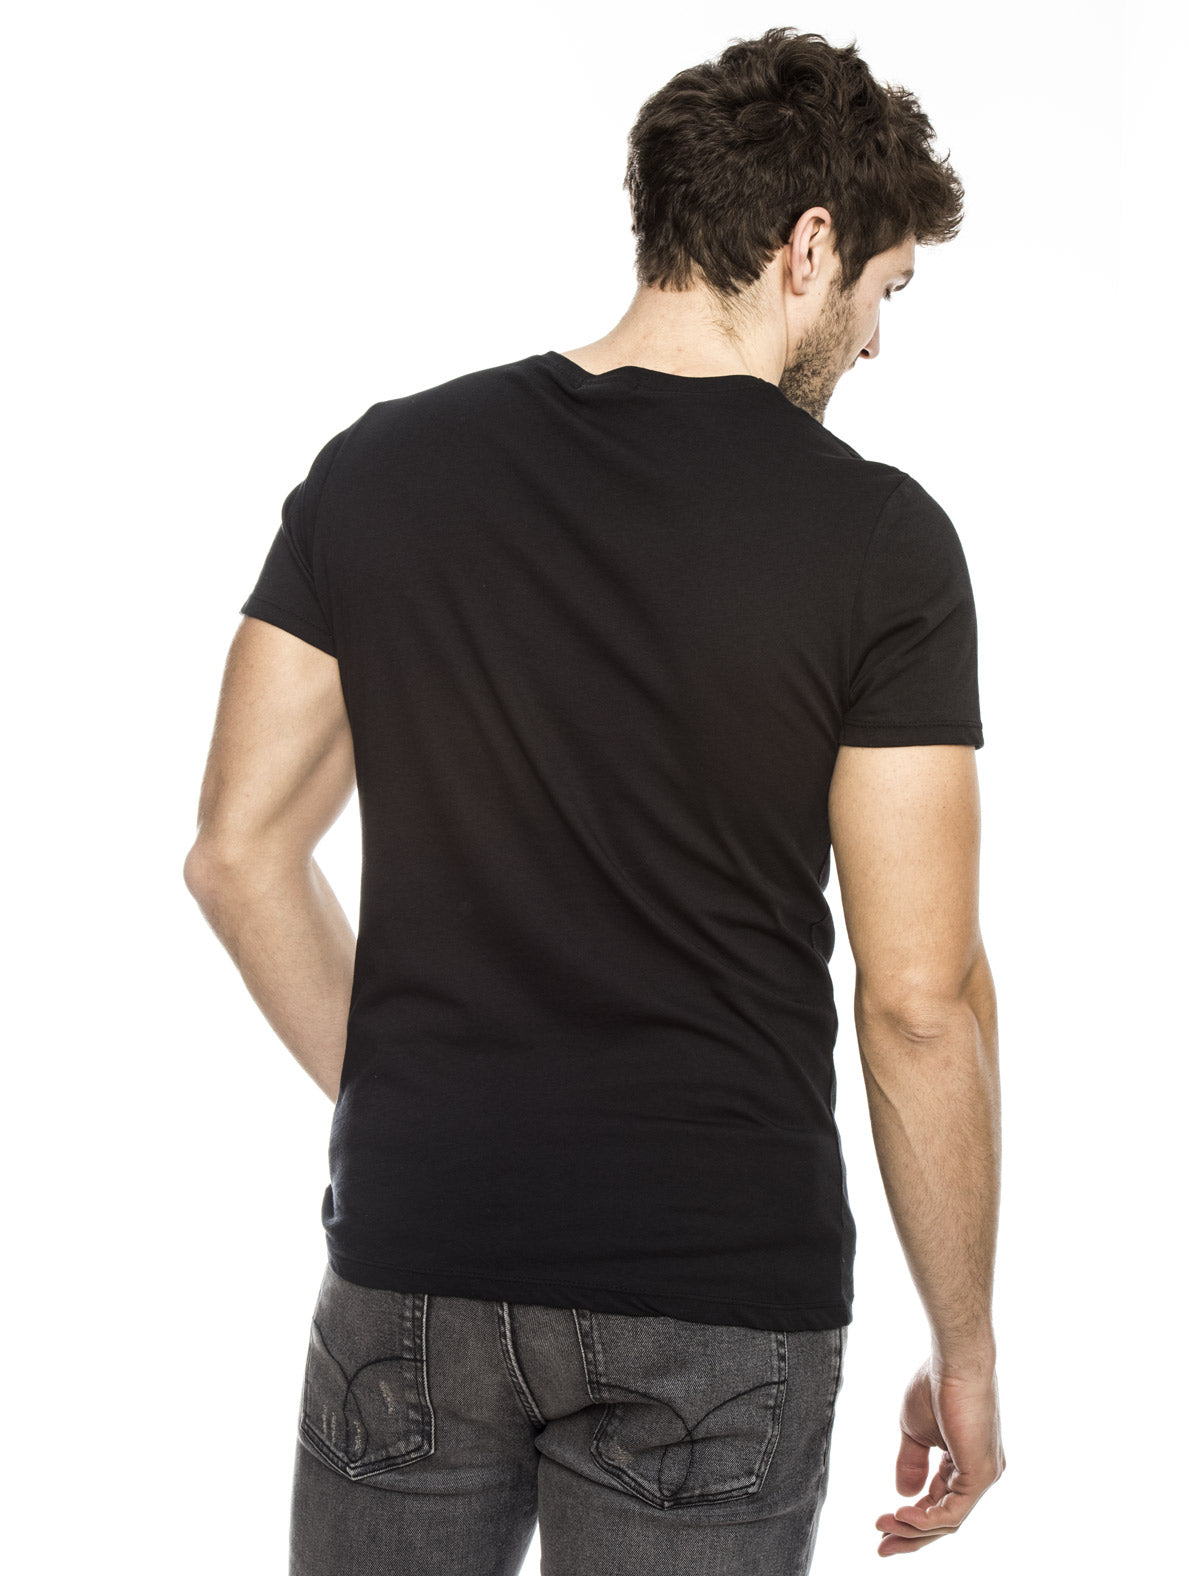 IPNO COTTON T-SHIRT IN BLACK